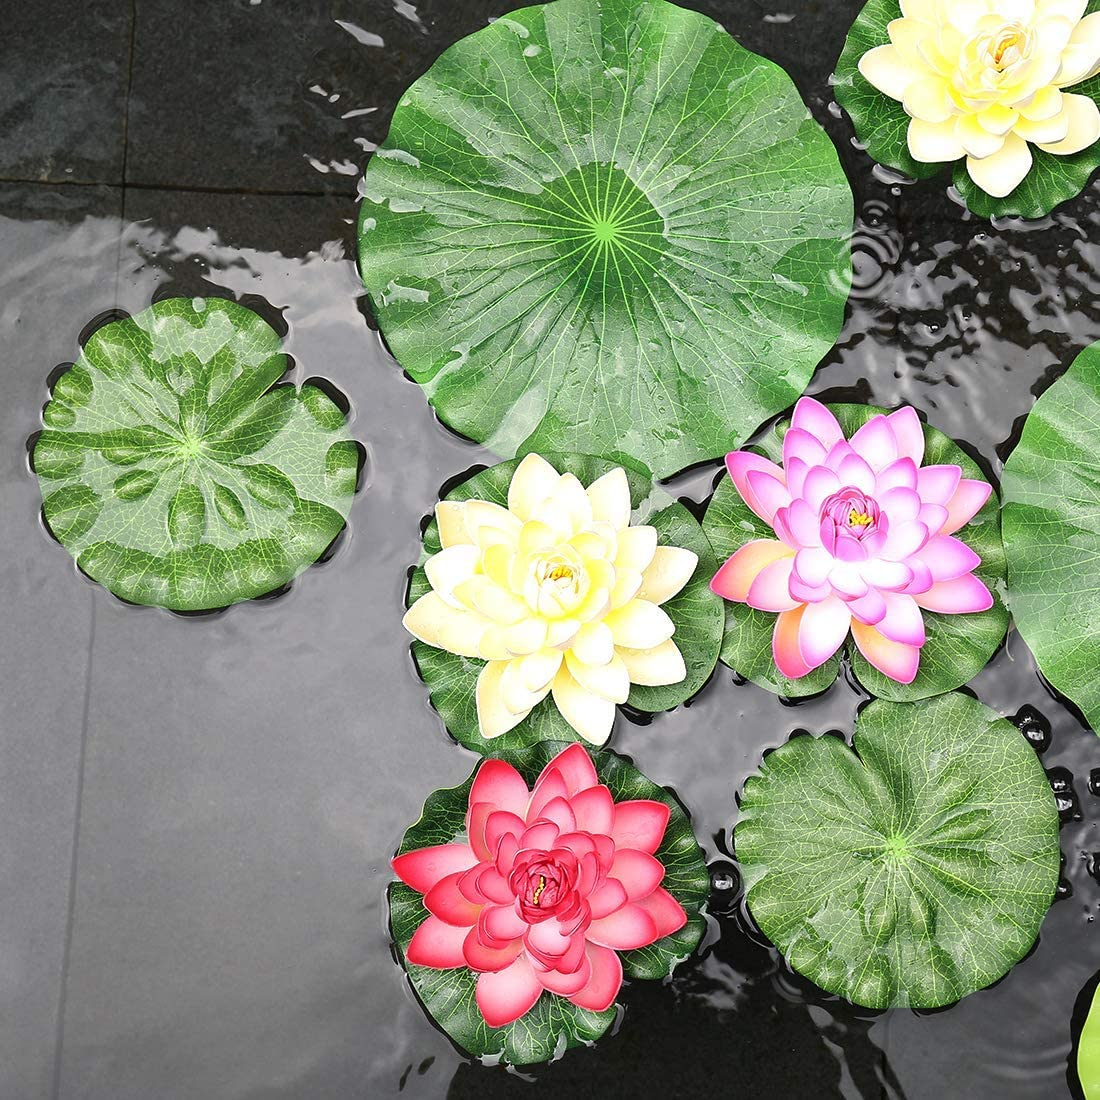 Perfect for Patio Koi Fish Pond Pool Aquarium Home Garden Wedding Party Special Event Decoration Sandis Pack Of 9 Artificial Floating Foam Lotus Leaves Water Lily Pads Ornaments Green